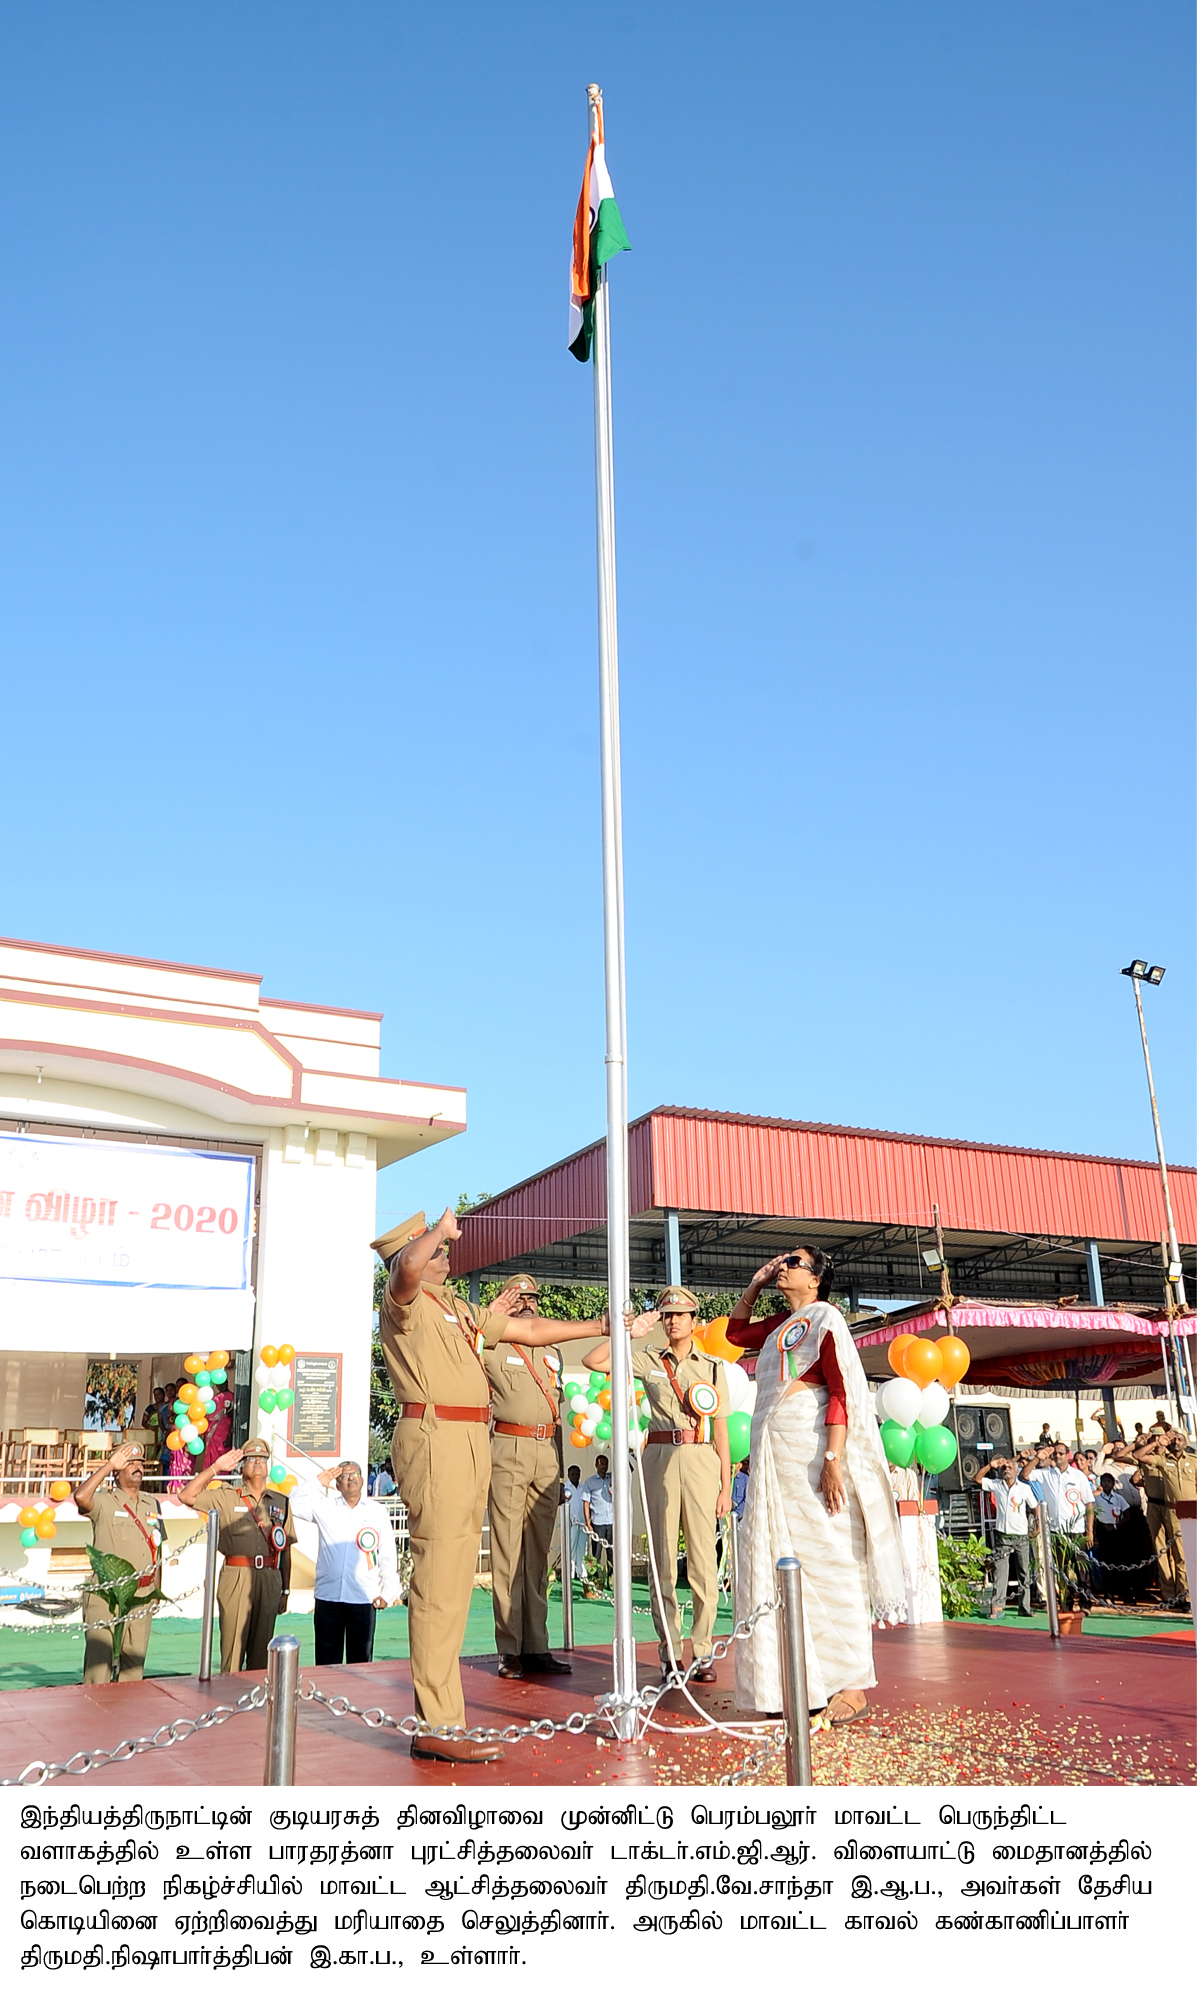 Republic Day Celebrations - 26.01.2020